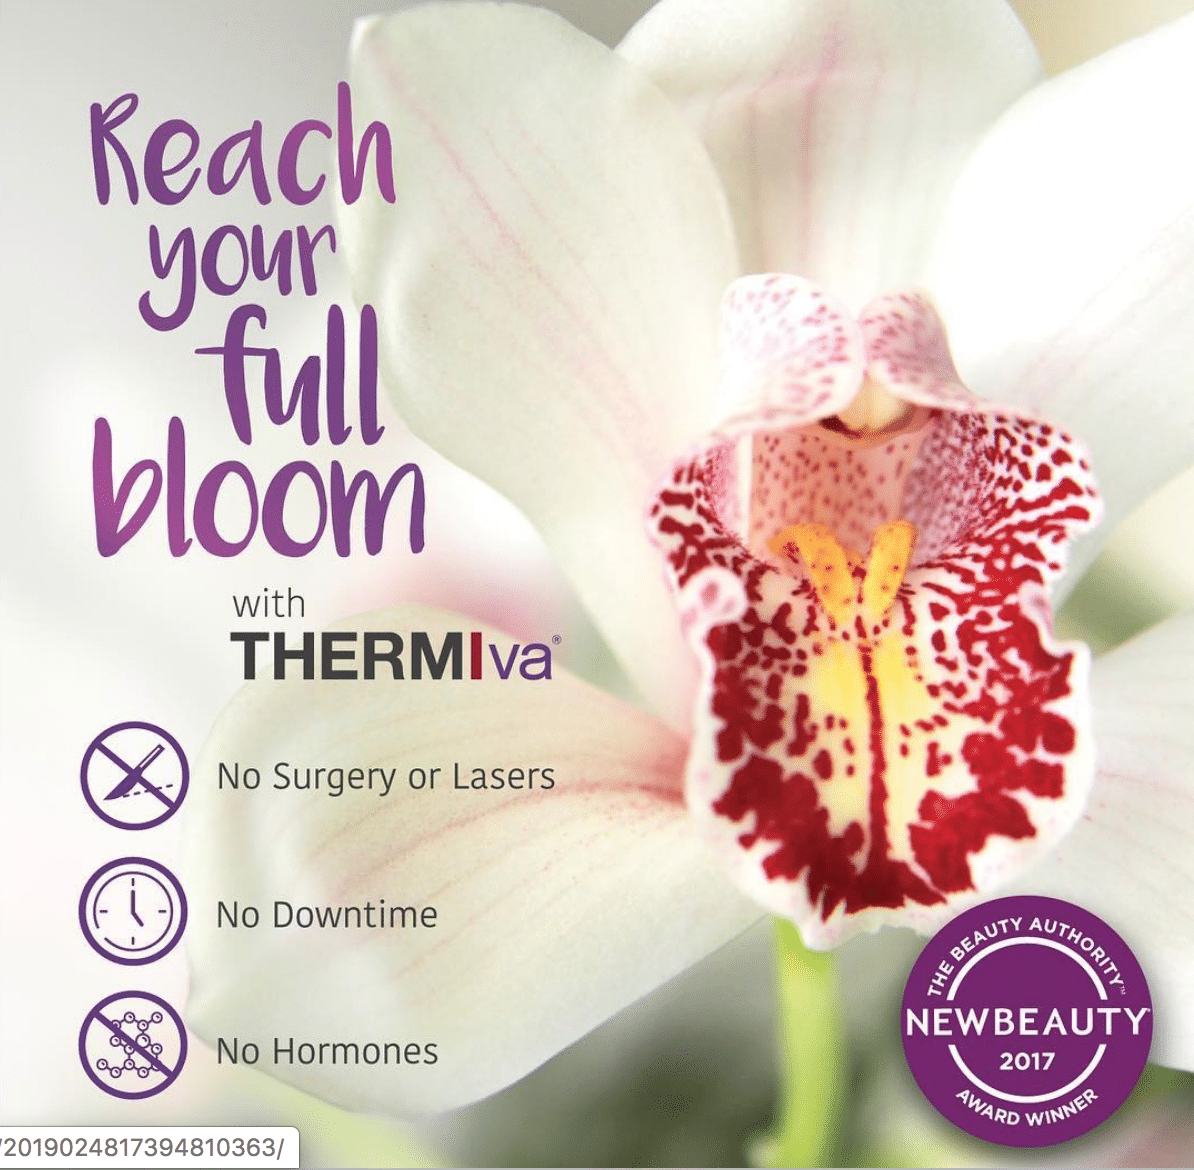 Reach your full bloom